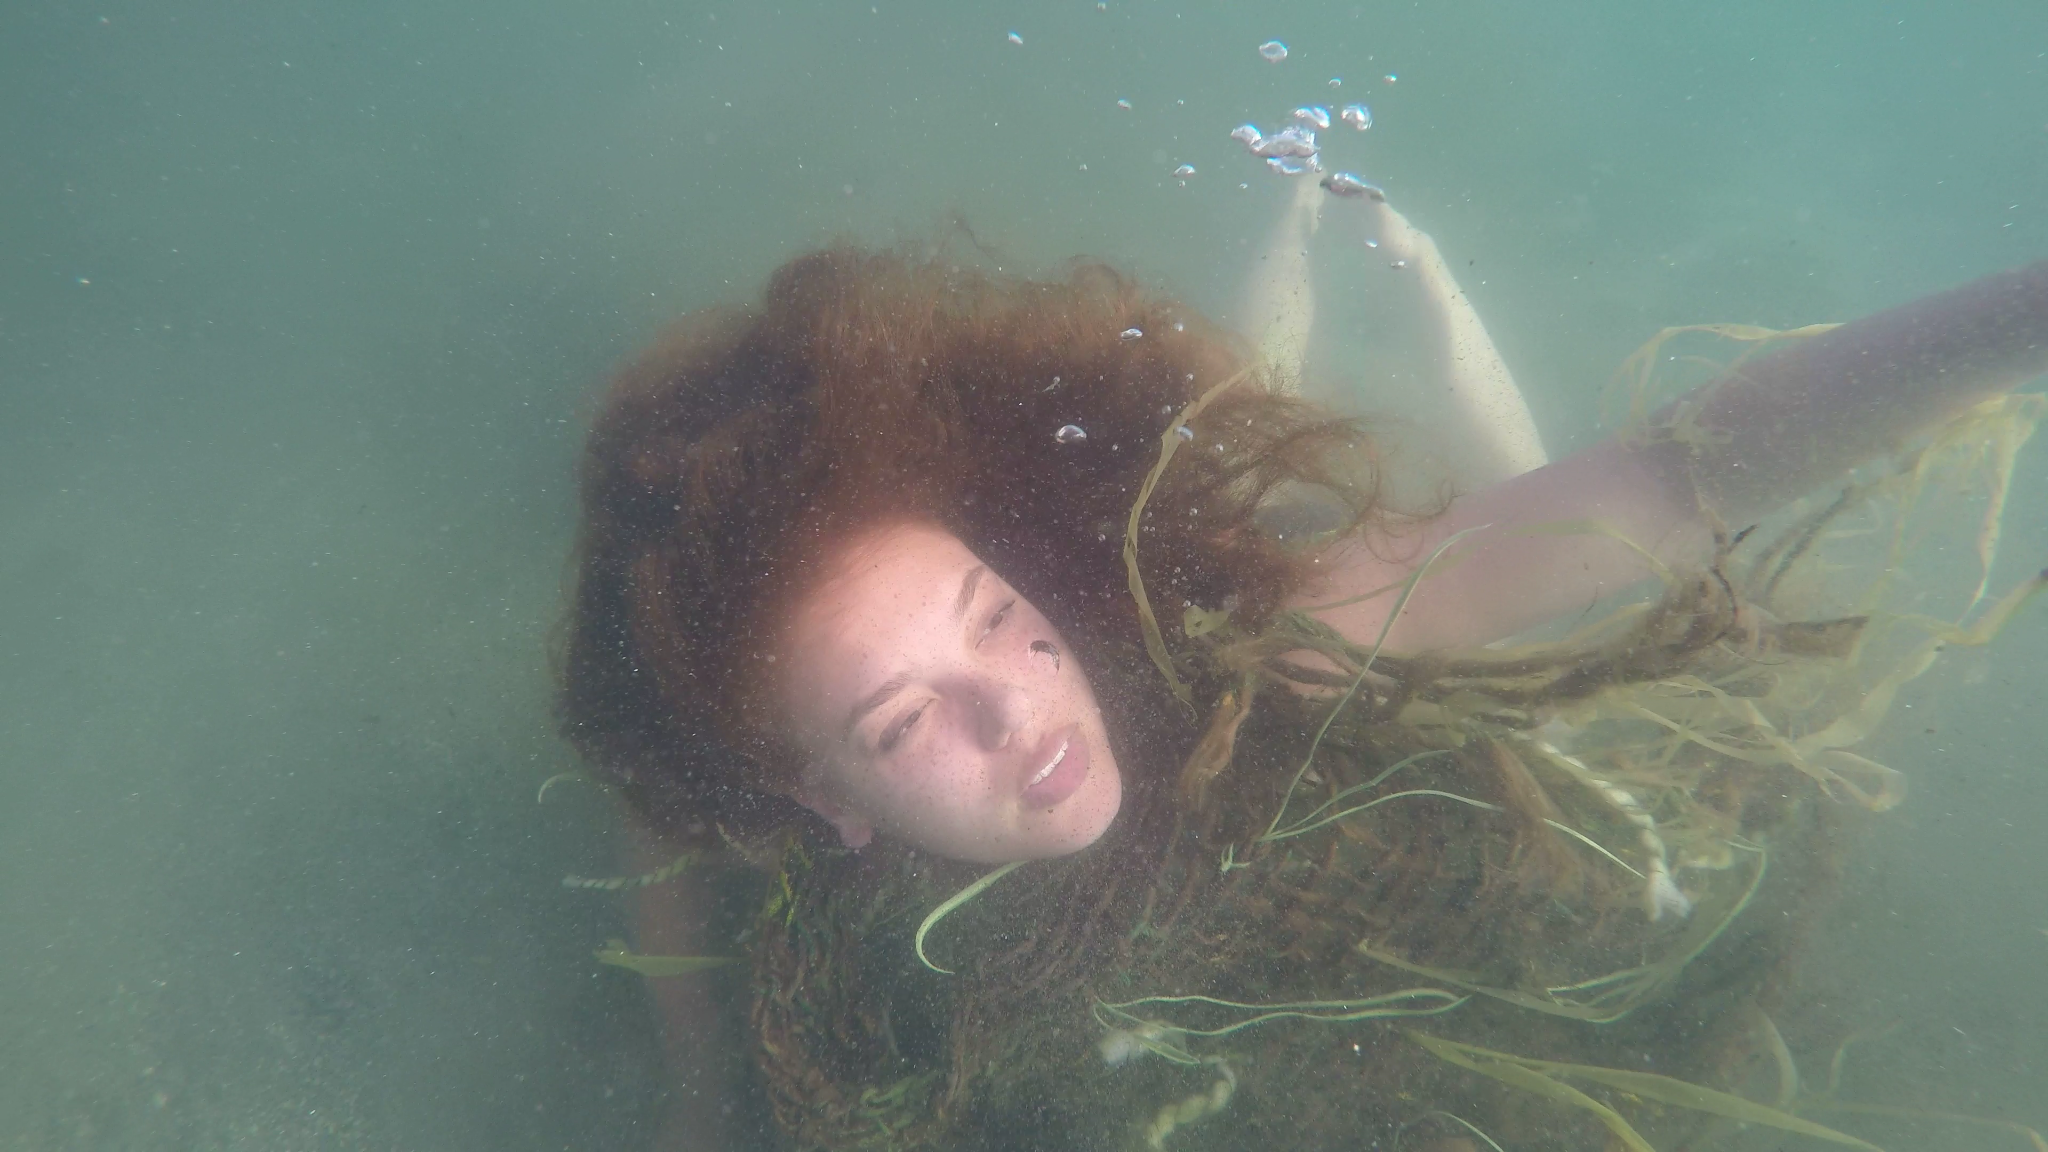 Leona (Ariana Polenco) in Bodies of Water